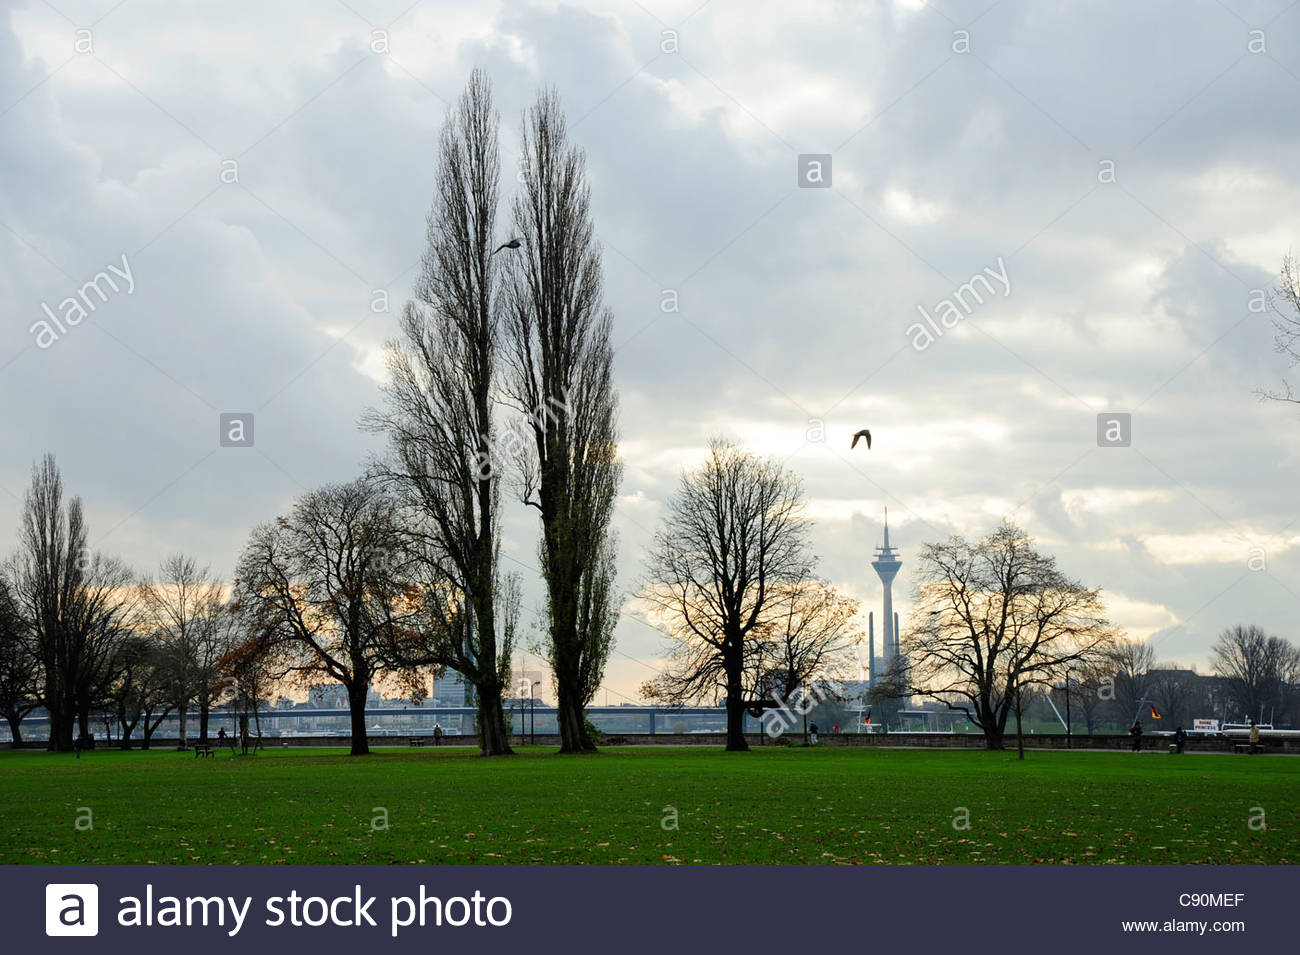 Trees in the Rheinpark in autumn, Pempelfort quarter, Duesseldorf, Duesseldorf, Rhineland, NRW, North Rhine-Westphalia, - Stock Image